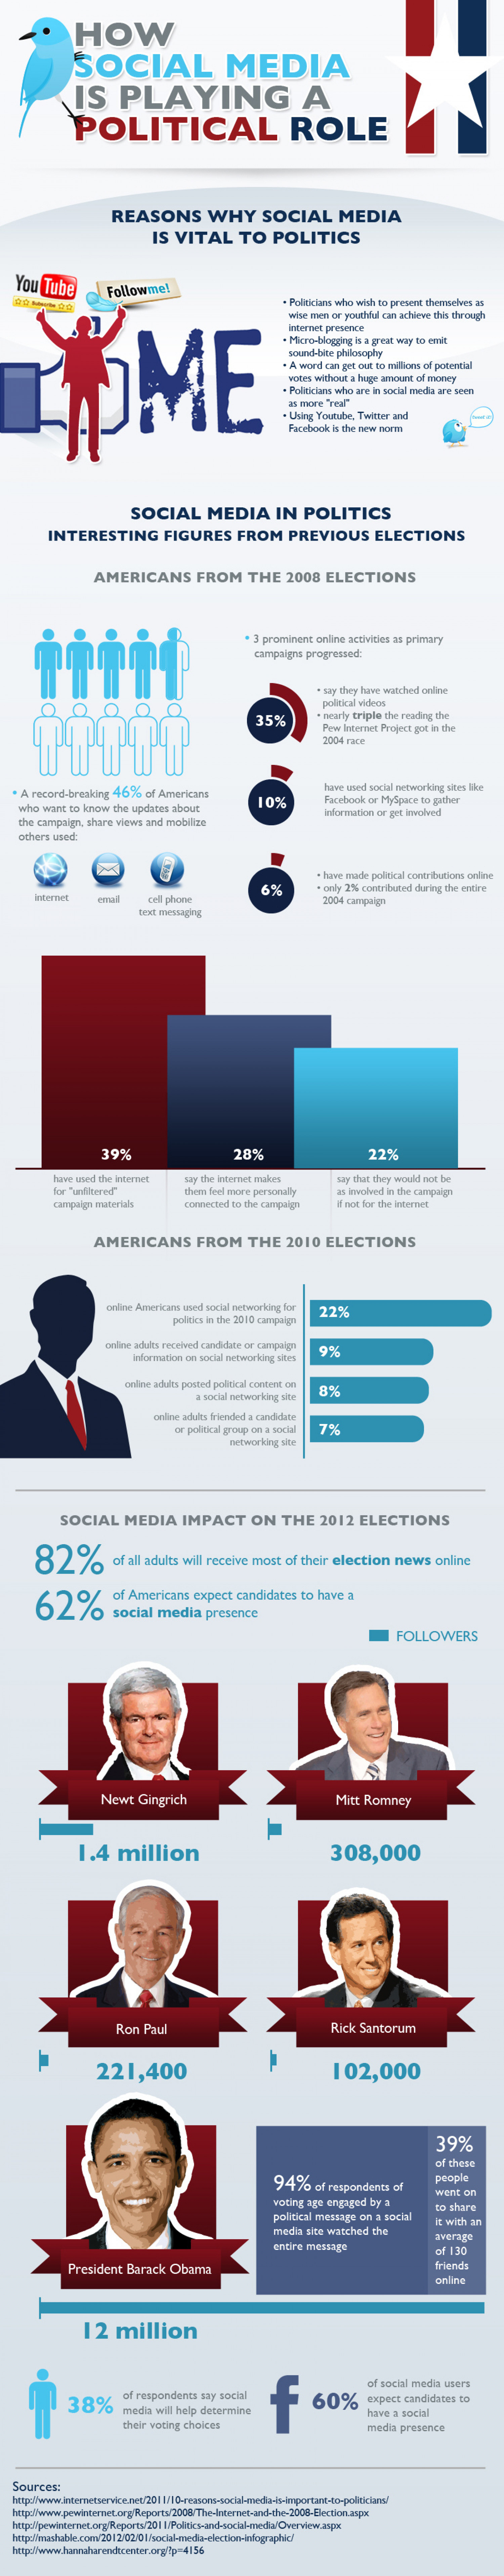 How Social Media is Playing a Political Role Infographic